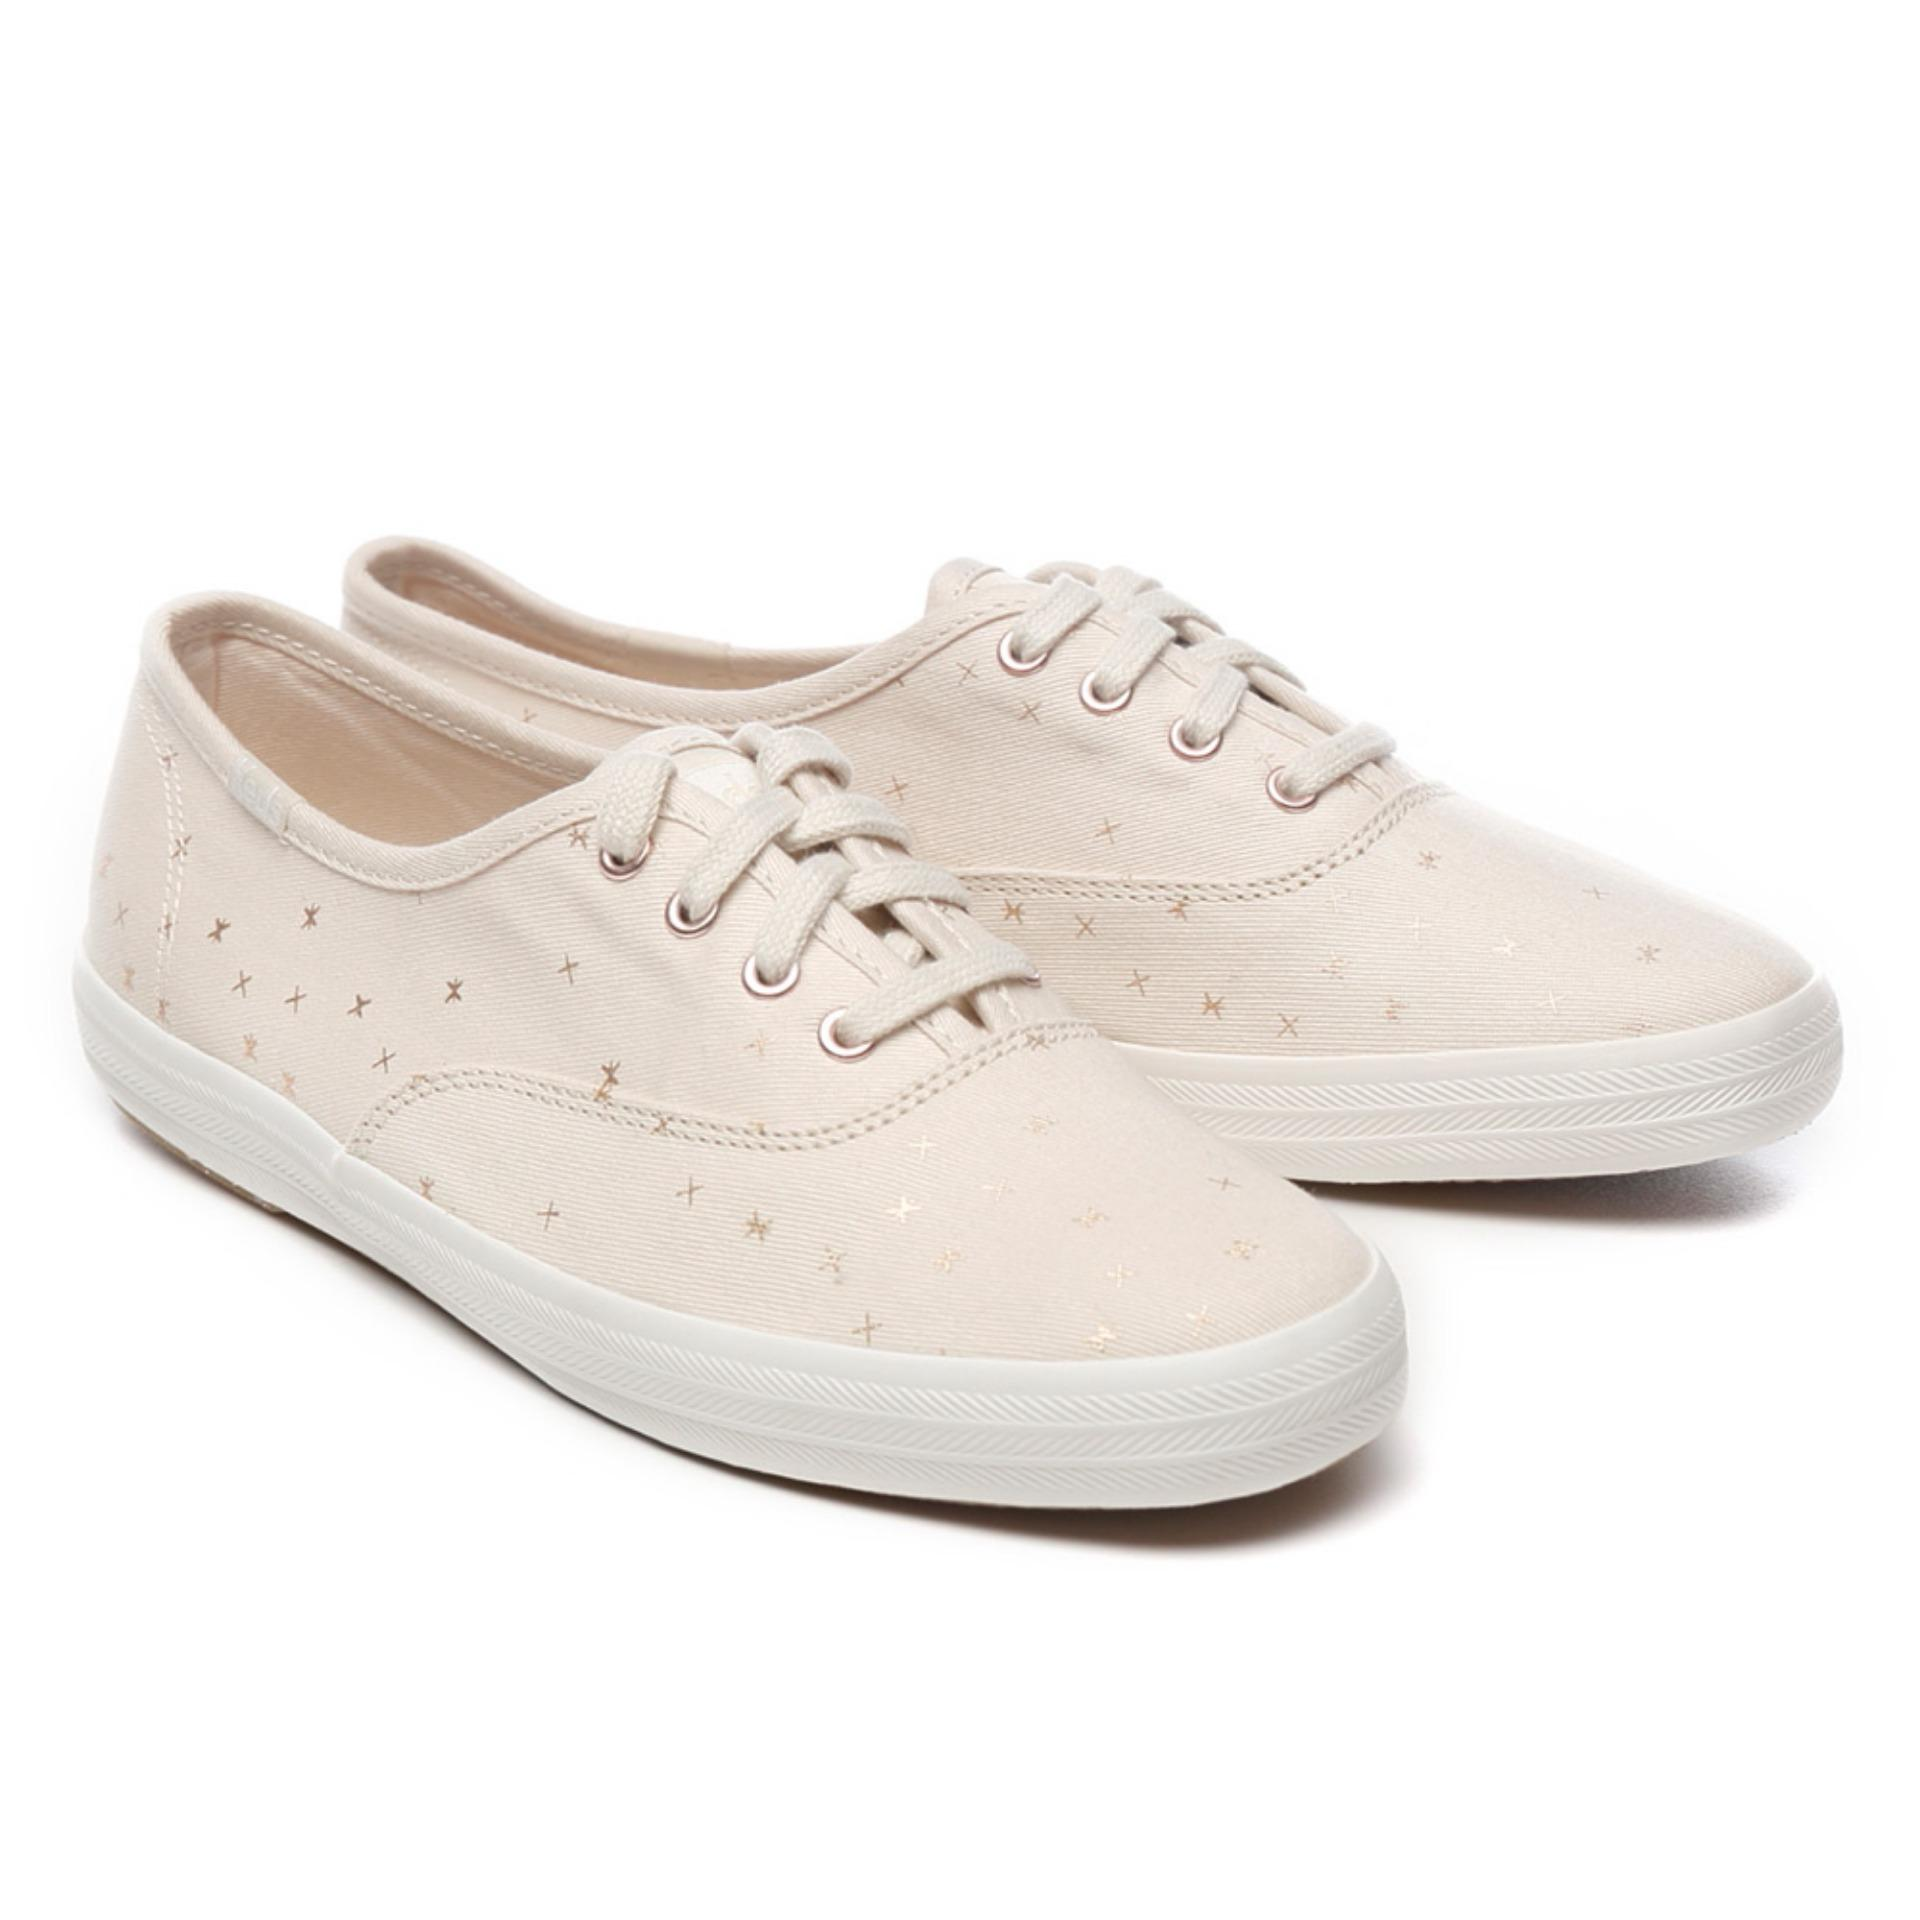 Price Keds Champion Ethereal Sneakers Wf57970 Keds Singapore